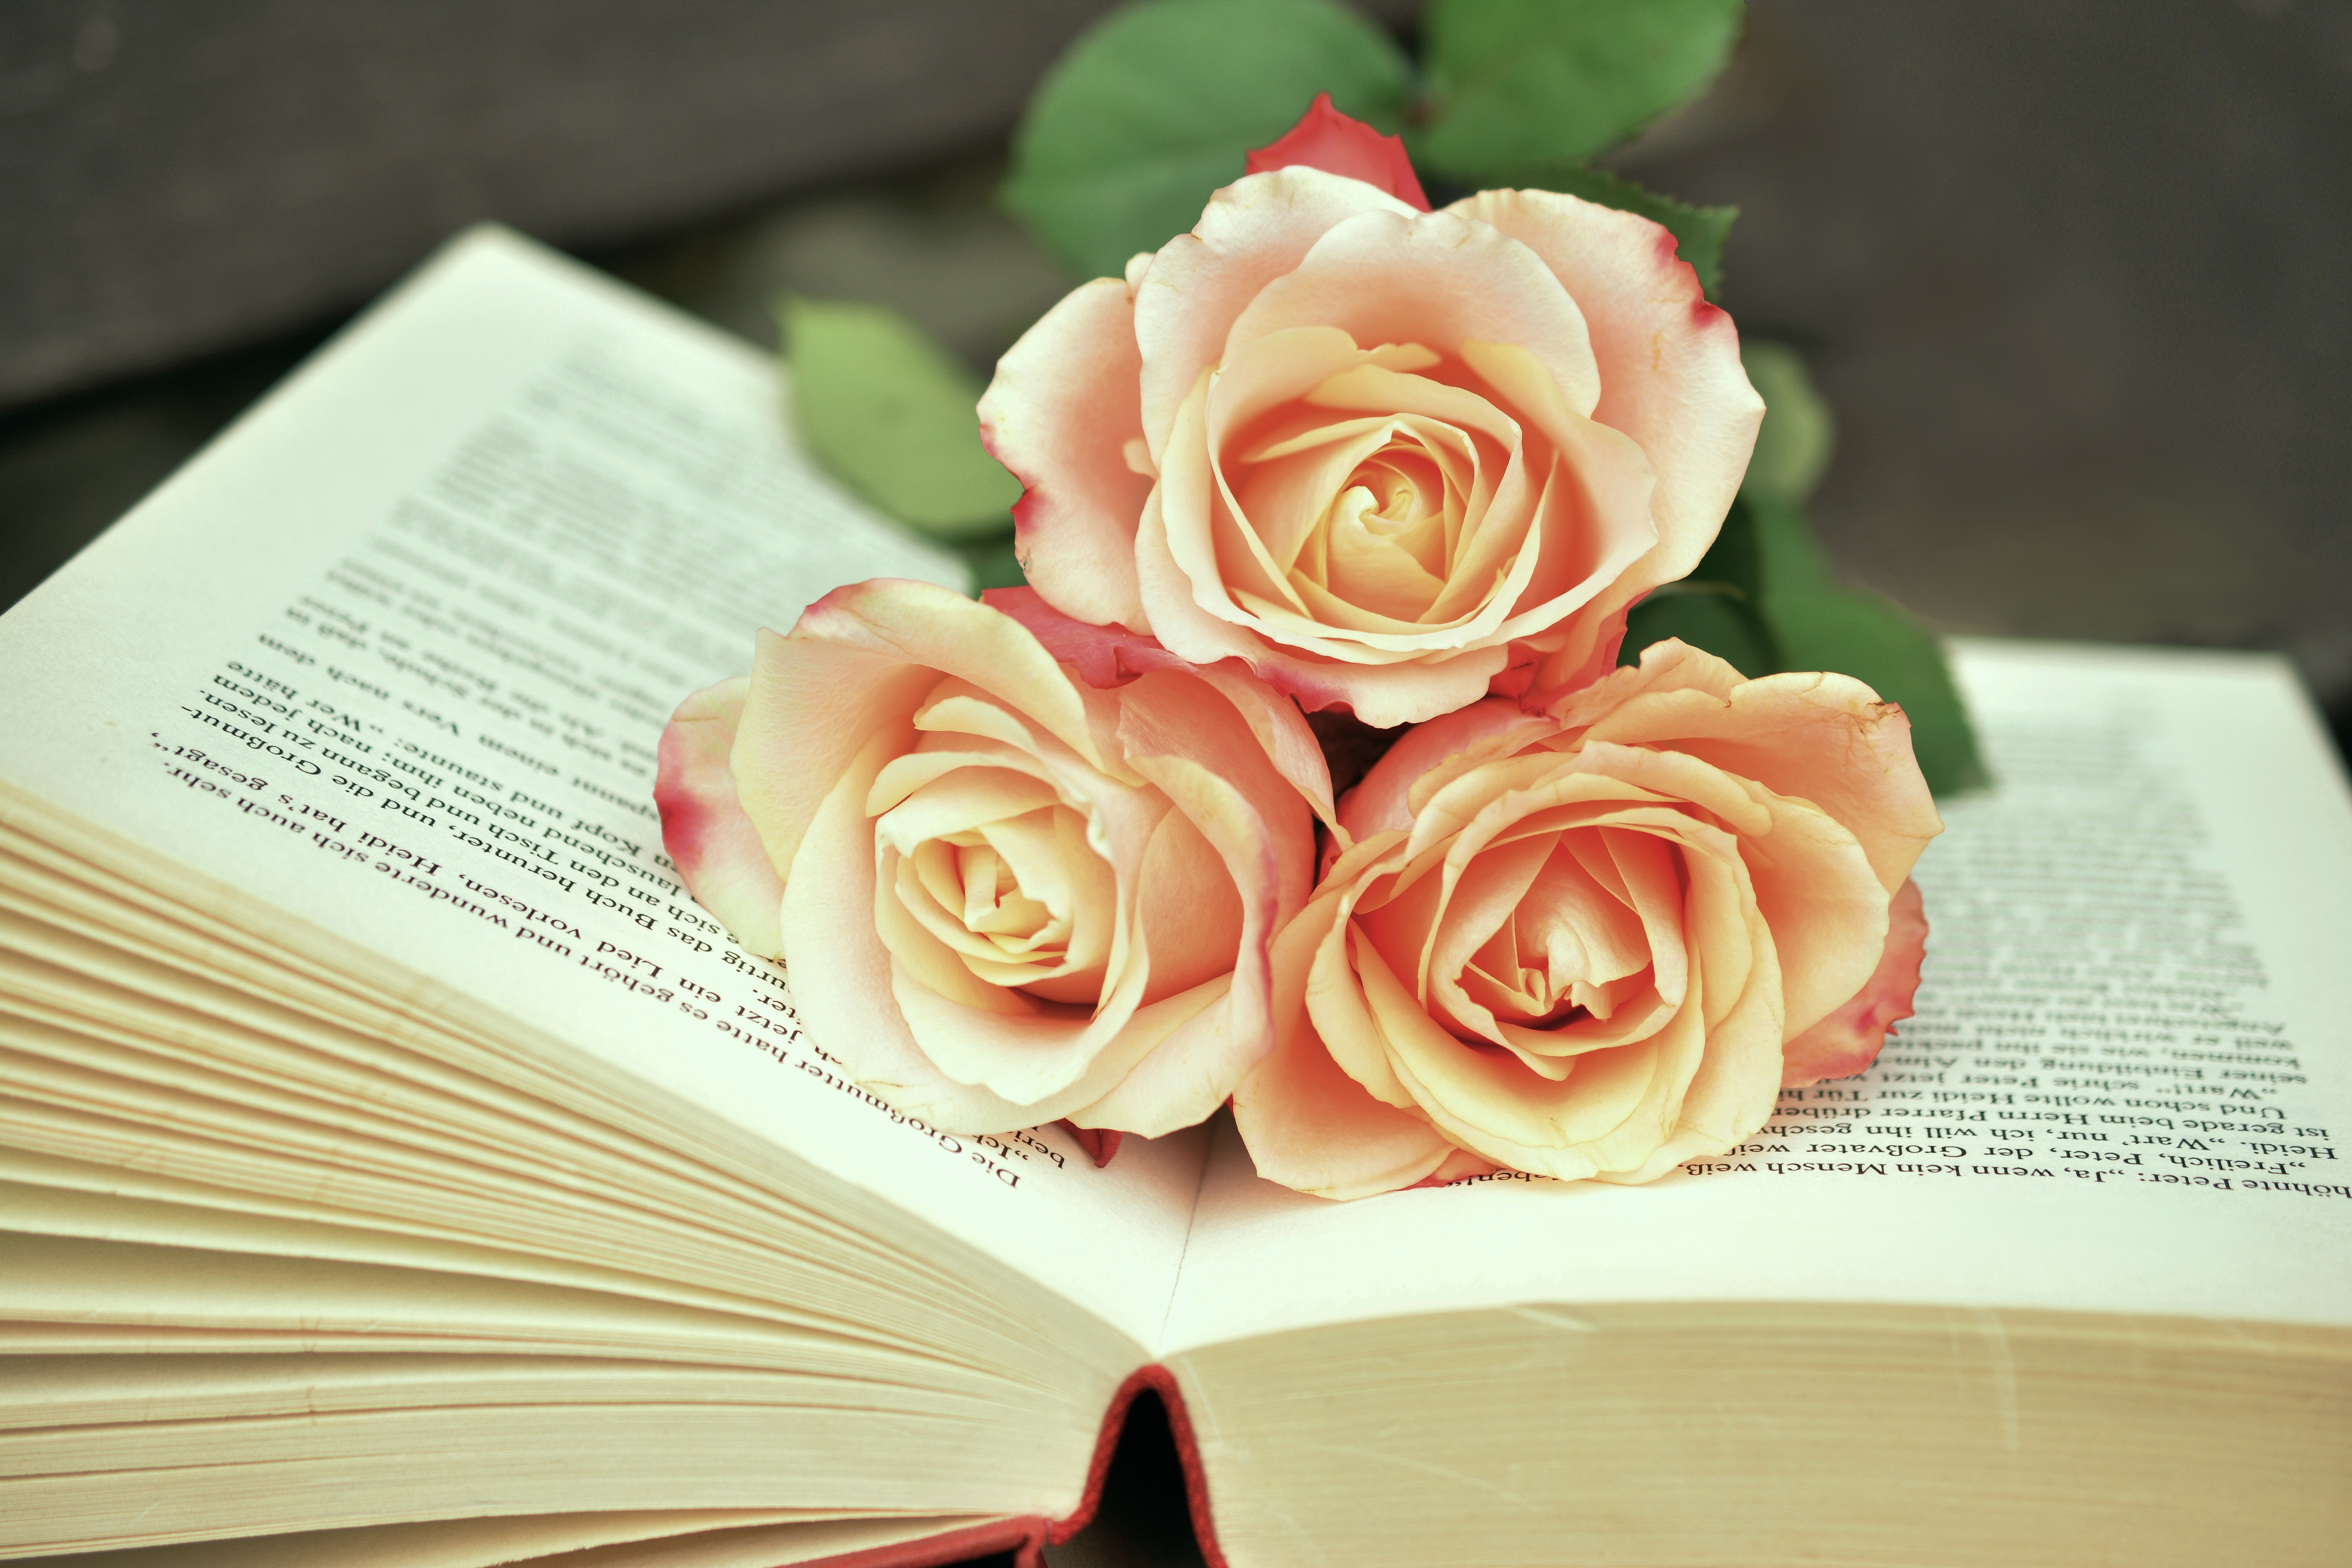 Three Pink Rose Flowers on Opened Book